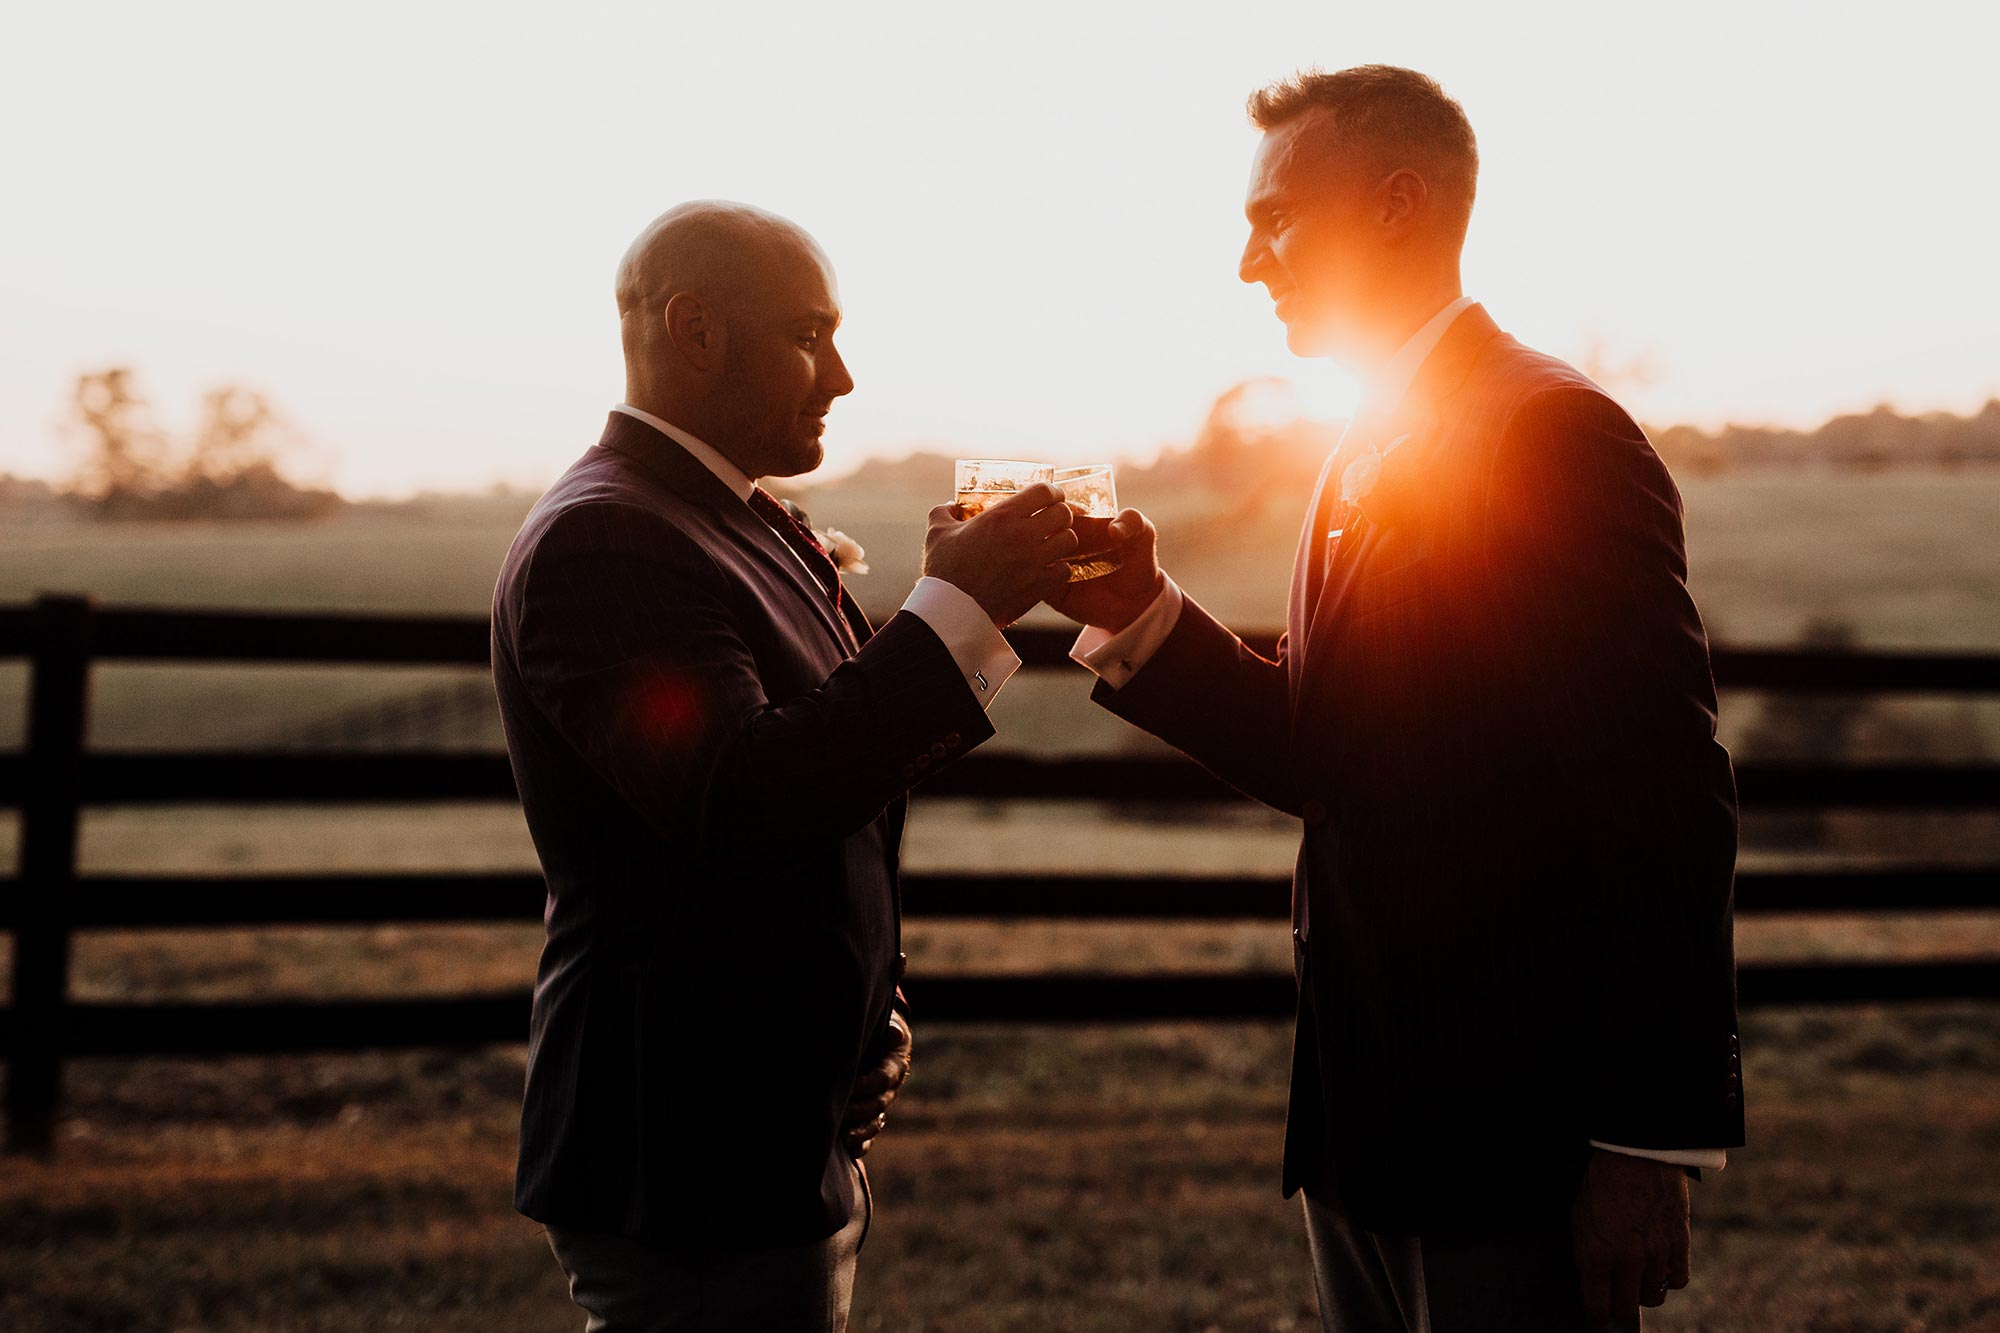 LGBTQ Louisville Kentucky Wedding at Hermitage Farm Crystal Ludwick Photo couple sharing bourbon by fence